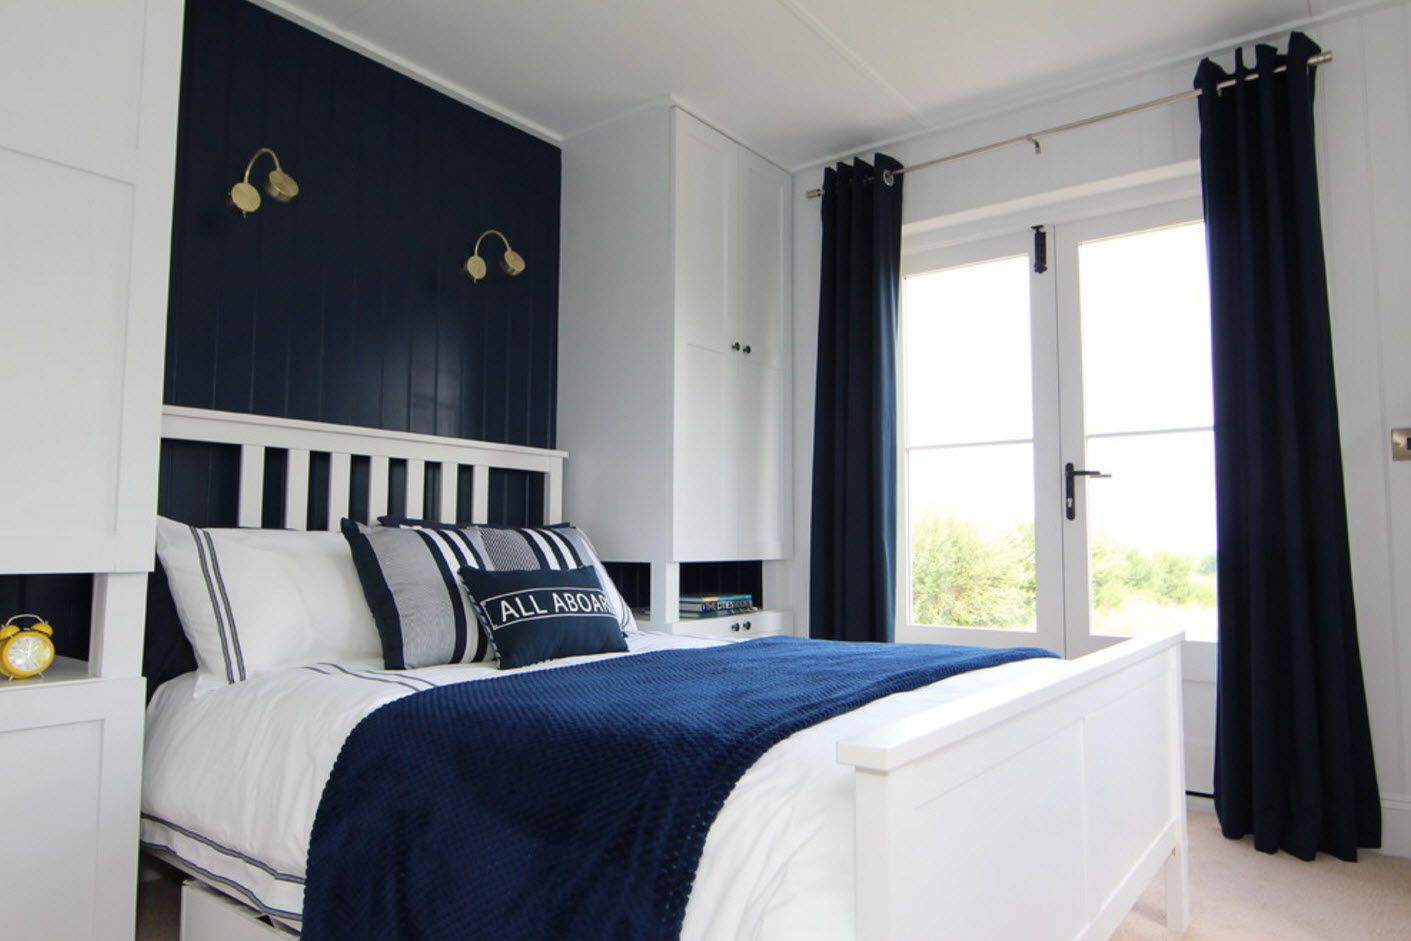 Marine style touch with deep blue accent wall and linen